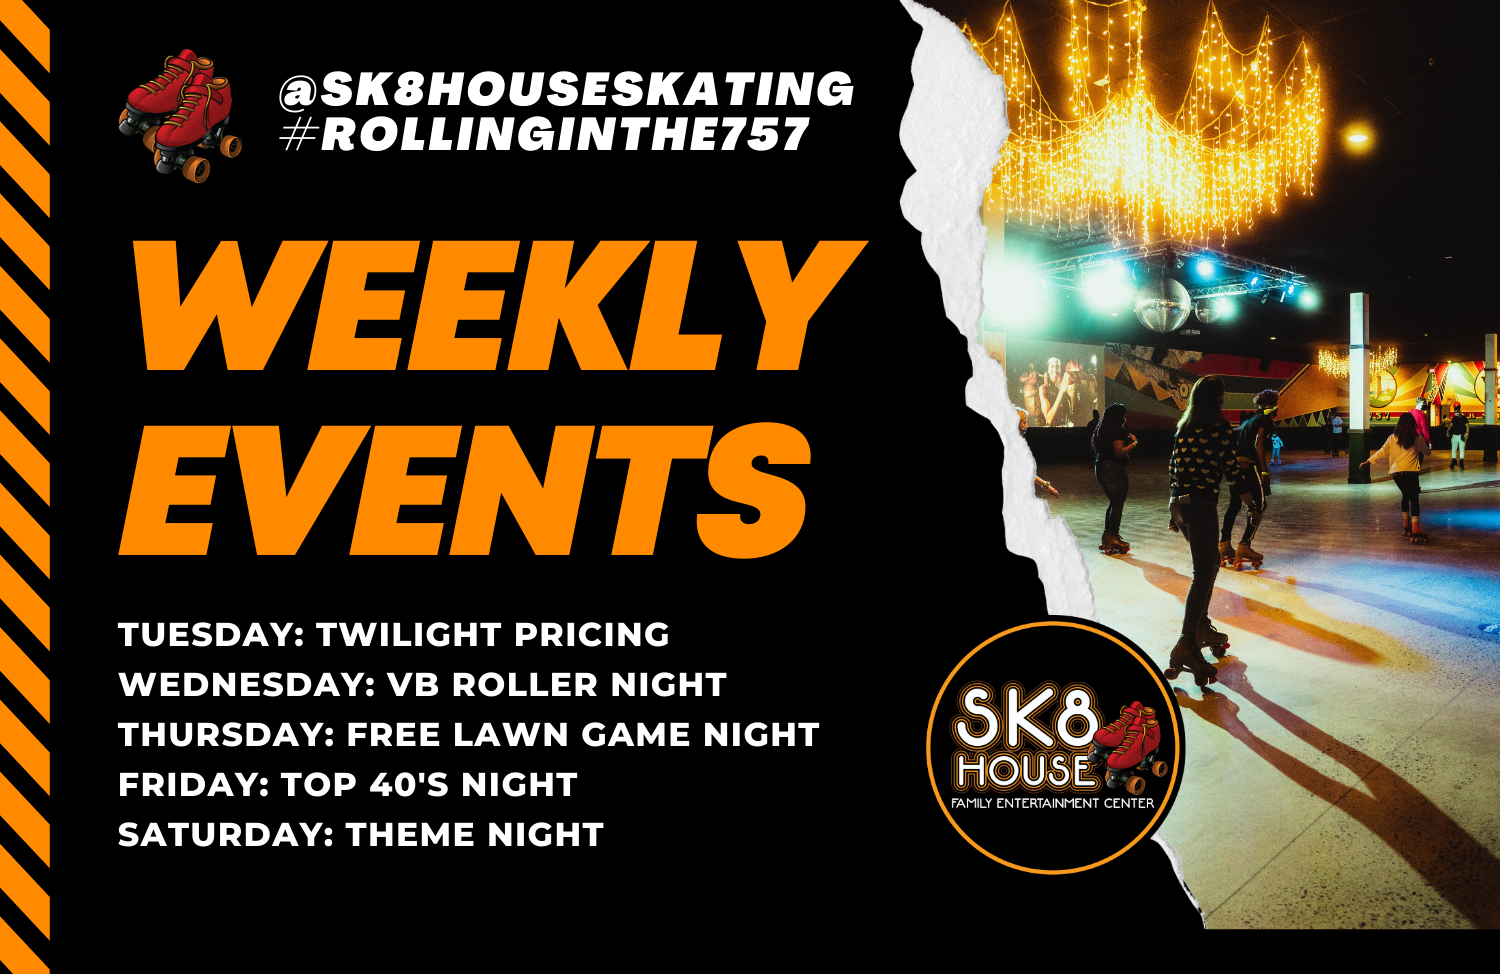 Weekly Events at SK8 House